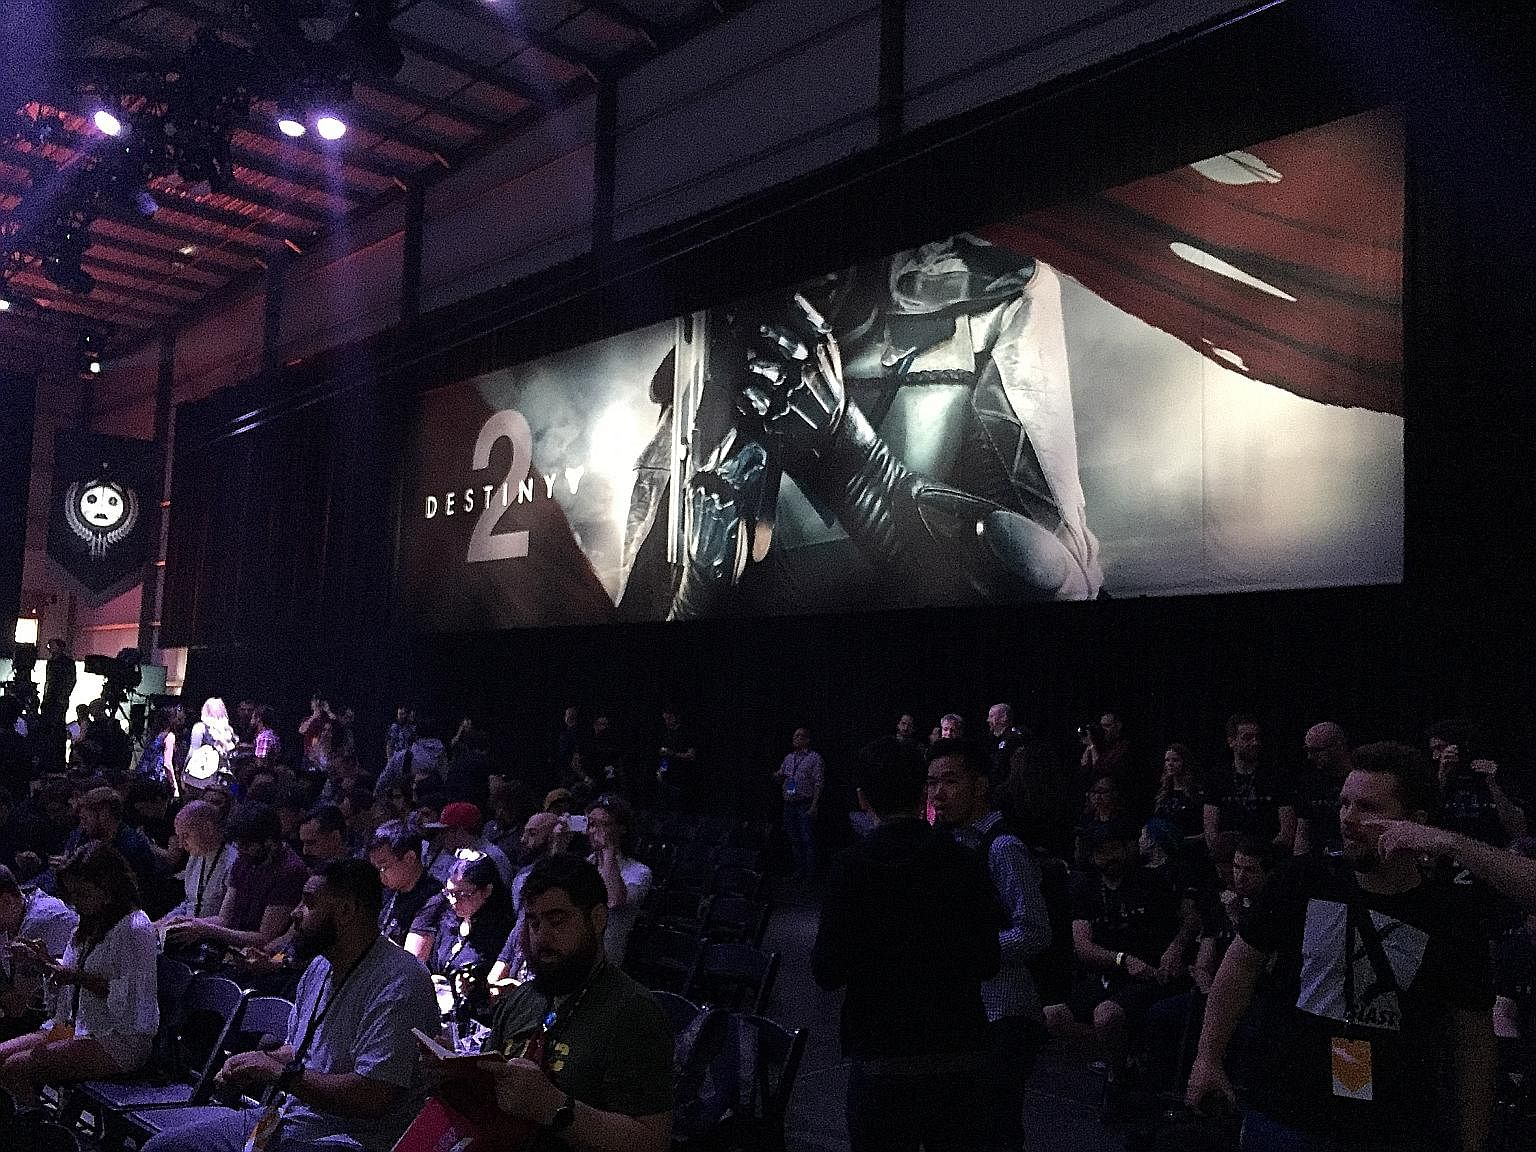 Bungie's Destiny 2 gameplay premiere event in Los Angeles last week. The sequel, to be released worldwide on Sept 8, appears to be finally living up to fans' initial expectations of a meaty storyline.